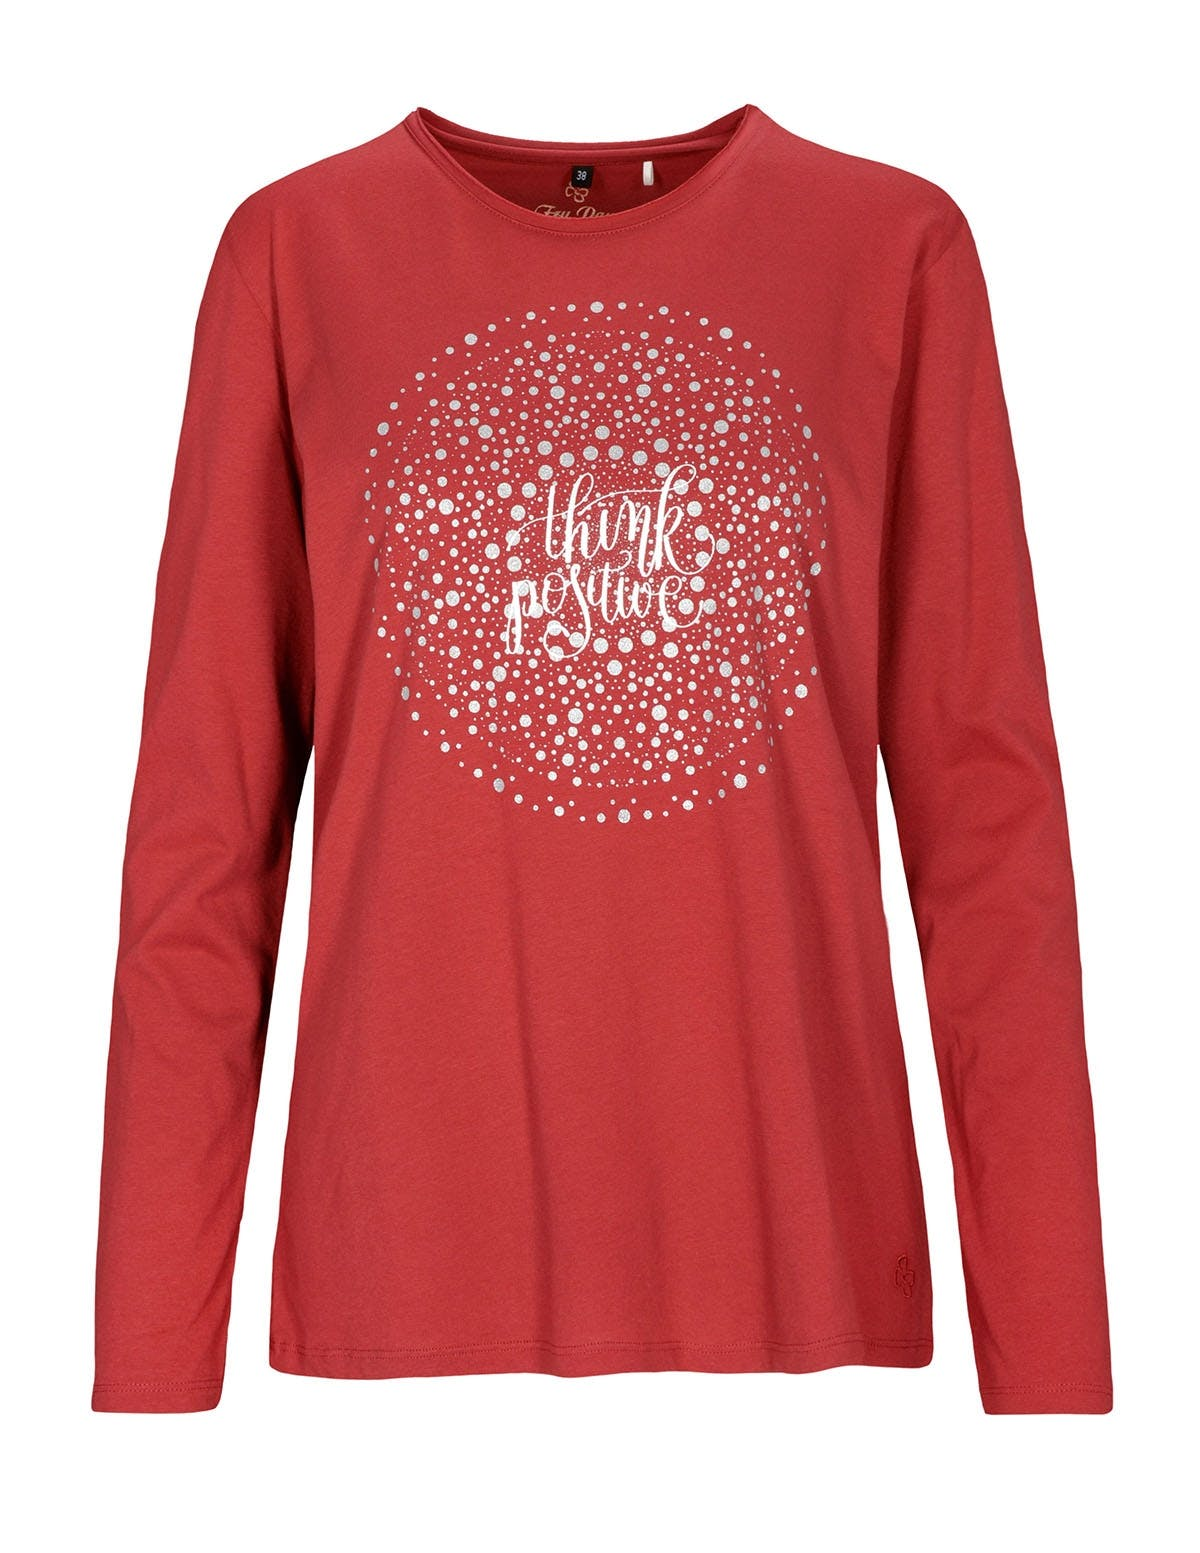 FRY DAY Langarmshirt mit Frontprint - Spicy Red